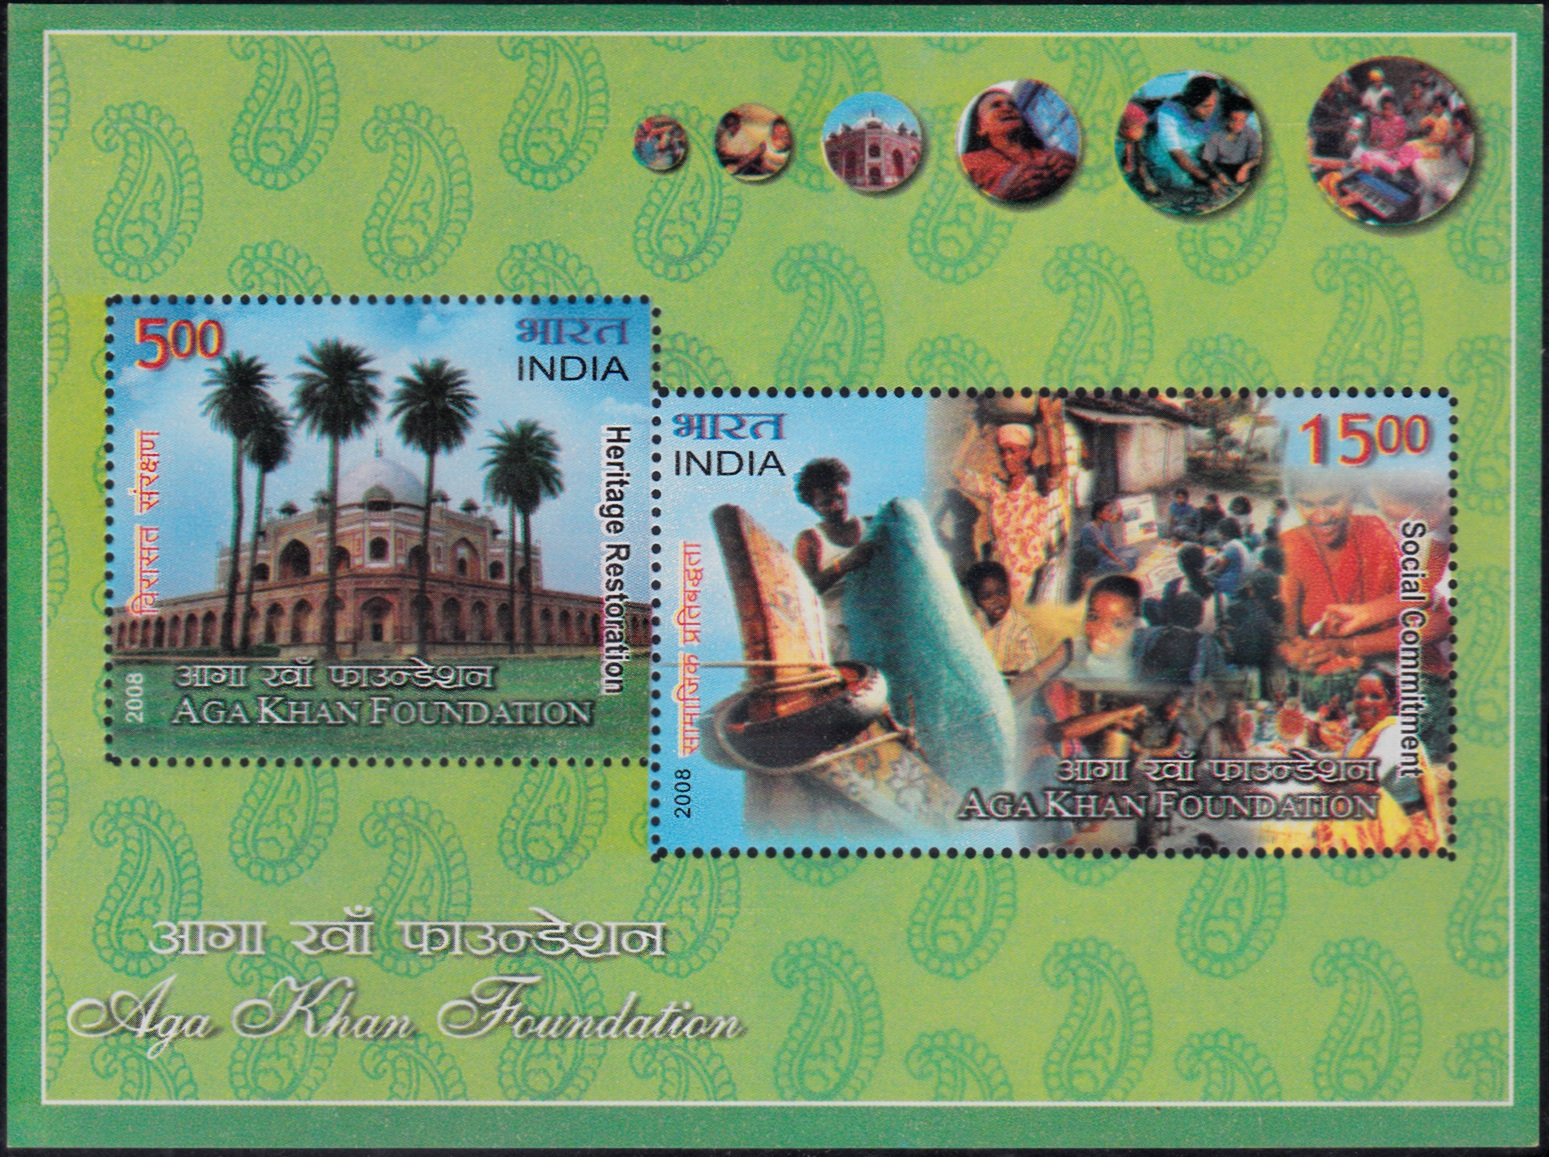 2356 Aga Khan Foundation [India Miniature Sheet]